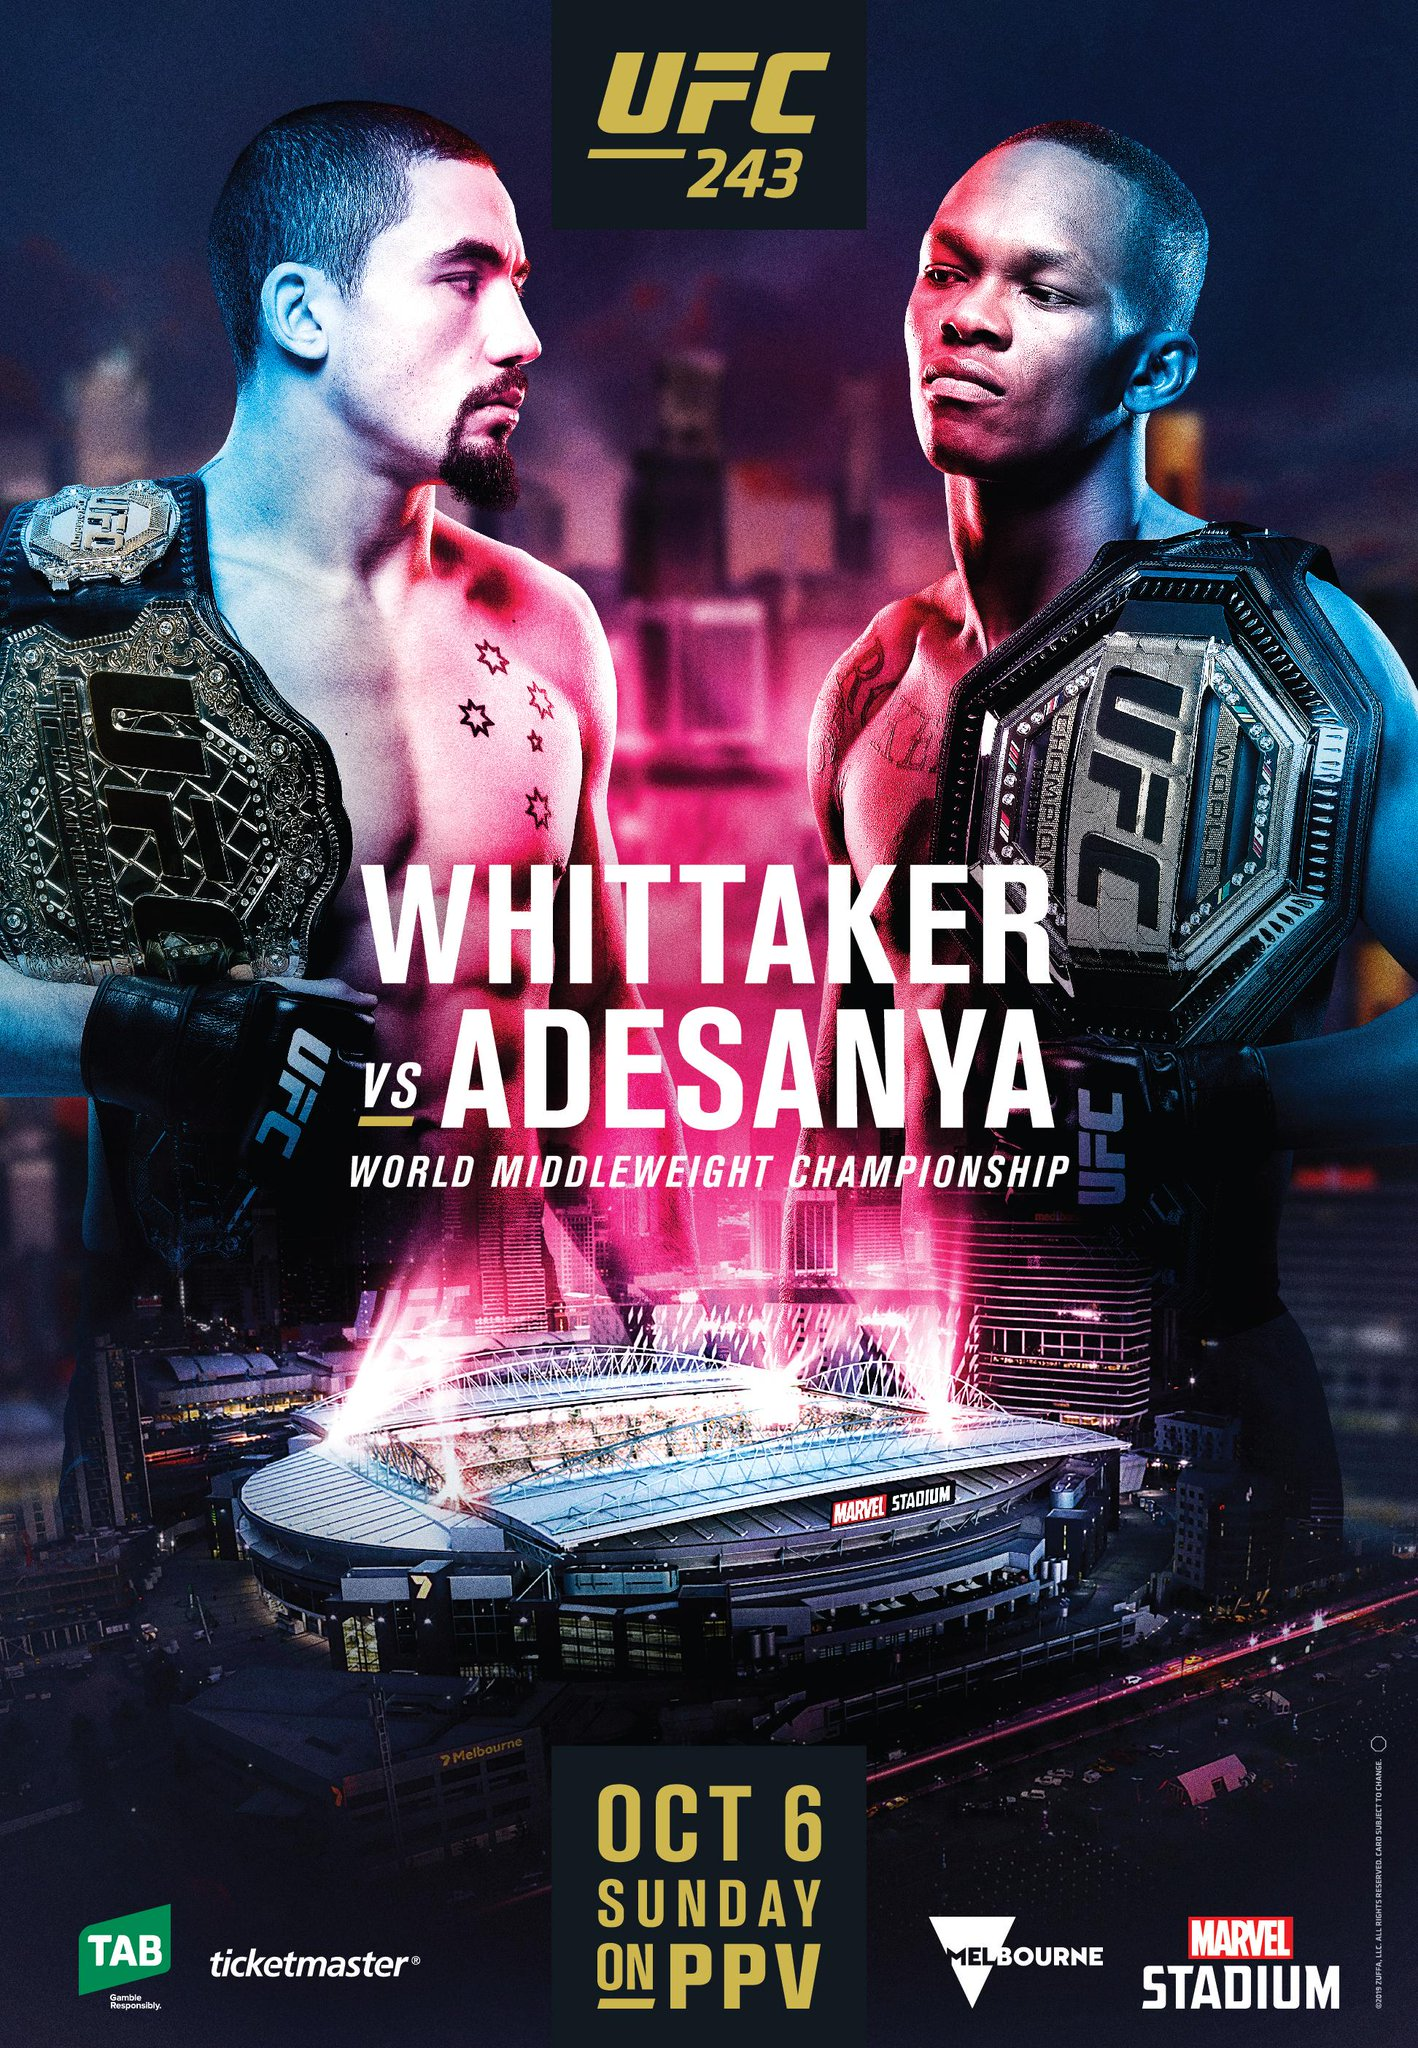 Pic: UFC 243 poster drops for 'Whittaker vs Adesanya